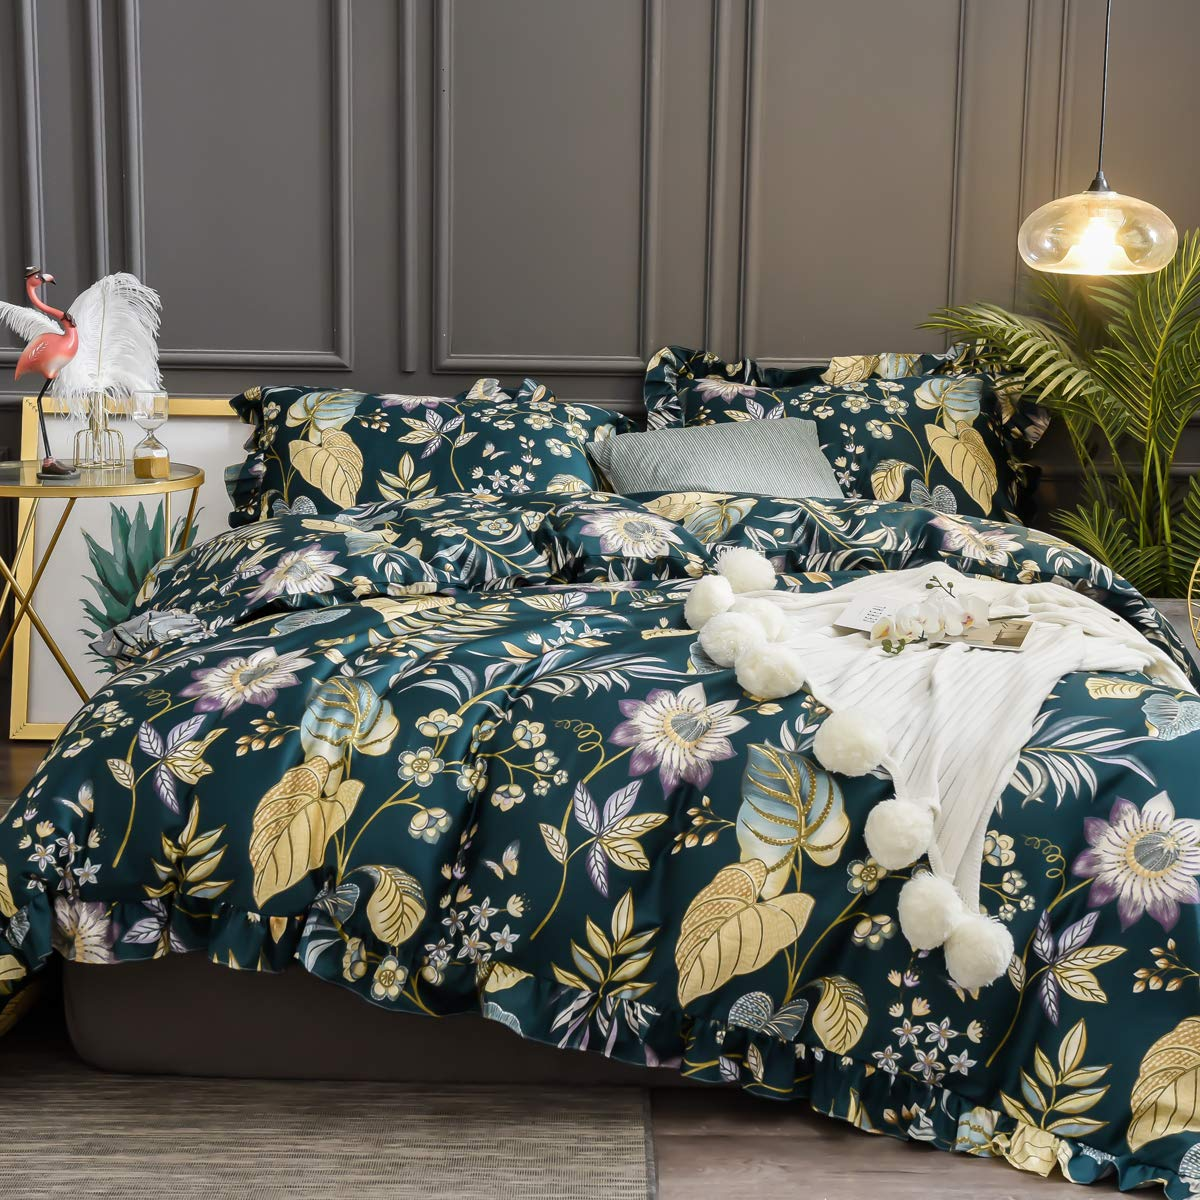 Softta Floral Duvet Cover Queen Bedding Set 3Pcs Vintage Ruffle Tropical Plam Leaves Girls Shabby Chic Duvet Covers Teal Purple Yellow Colorful 100% Egyptian Cotton 800 TC Hidden Zipper Closure